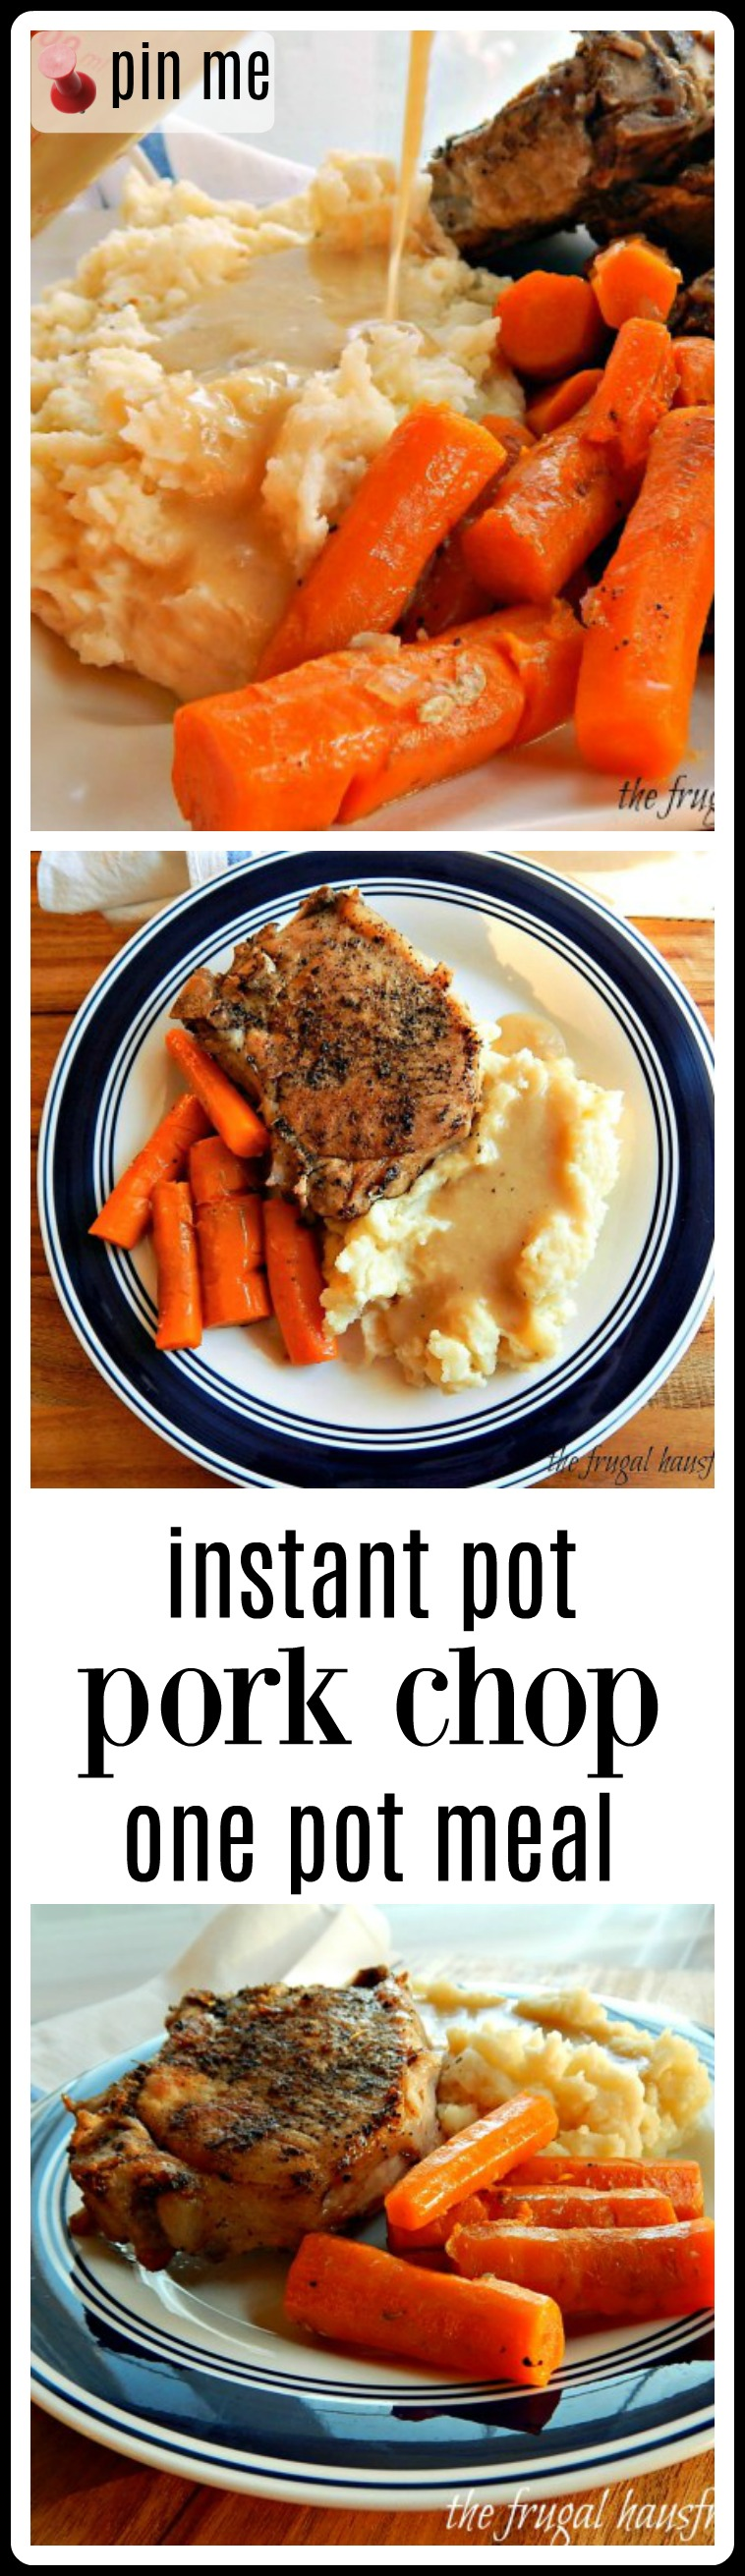 This Instant Pot Pork Chop One-Pot Meal is a favorite of ours & of my folks, who are in their 80's & 90's! Big midwestern pork chops, mashed potatoes & cream gravy & tender carrots! Midwestern Comfort perfect for a blustery day.